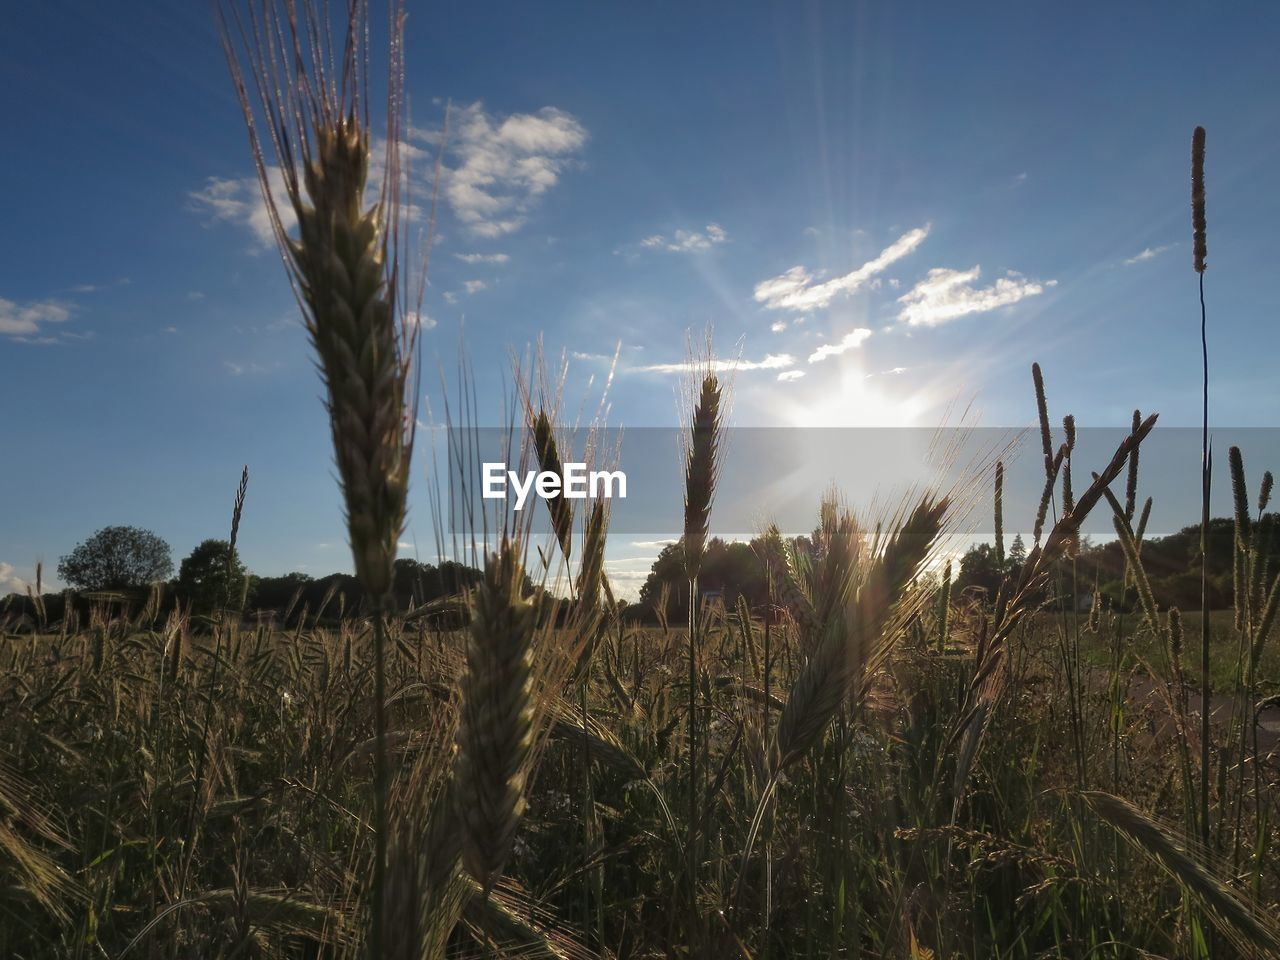 growth, field, nature, farm, agriculture, cereal plant, plant, crop, tranquility, no people, tranquil scene, straw, wheat, beauty in nature, outdoors, landscape, sky, rural scene, day, ear of wheat, scenics, close-up